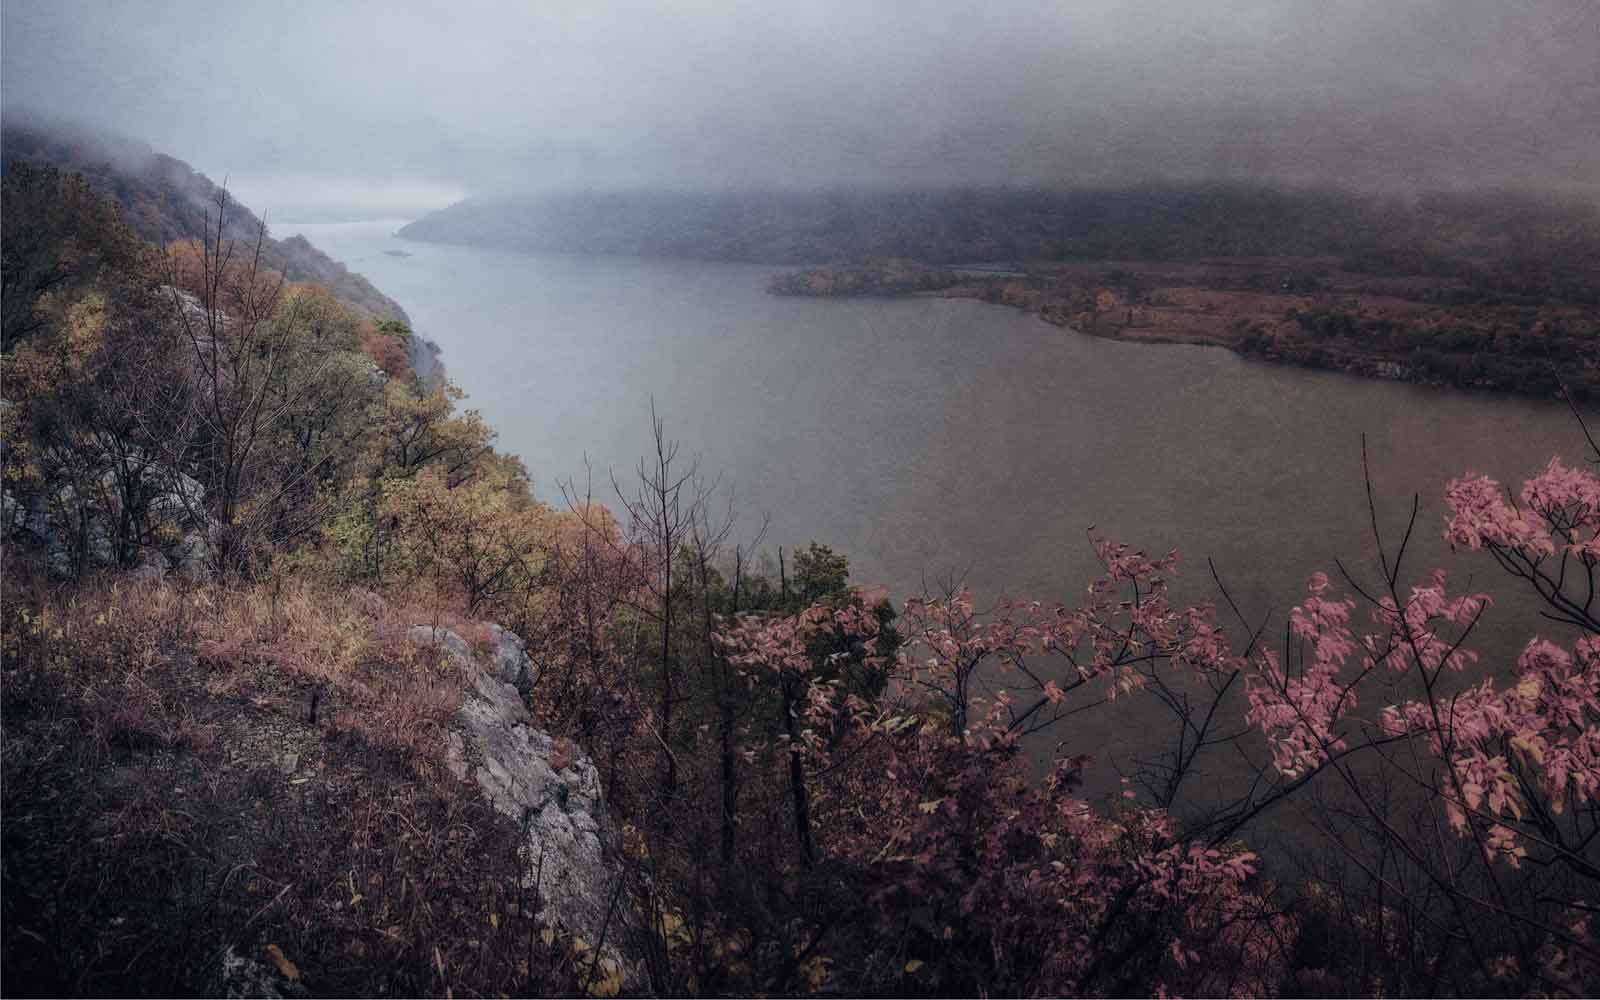 View of the Hudson River in the Fog from Anthony's Nose, folk horror in the Hudson Valley